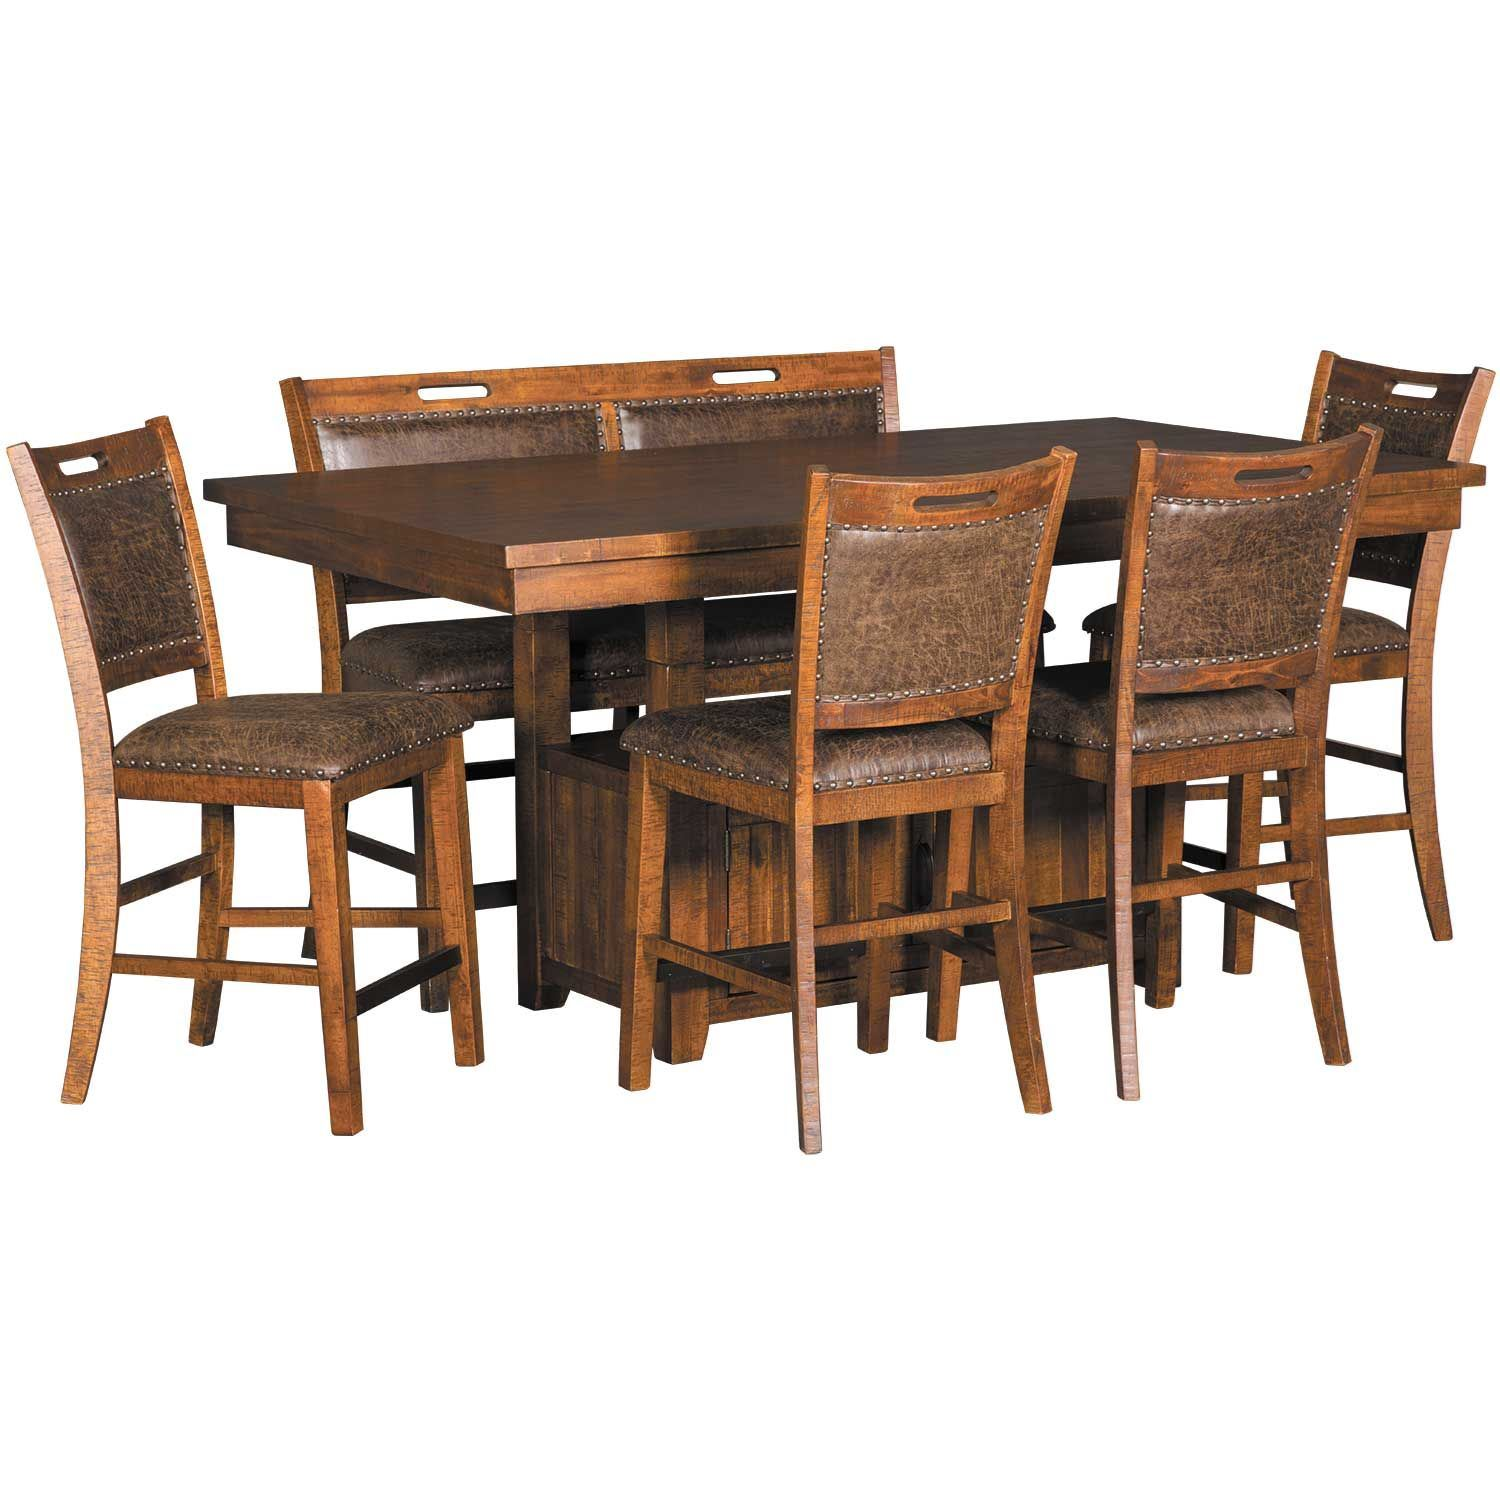 Pleasant Fawn 6 Piece Dining Pub Set Home Interior And Landscaping Dextoversignezvosmurscom